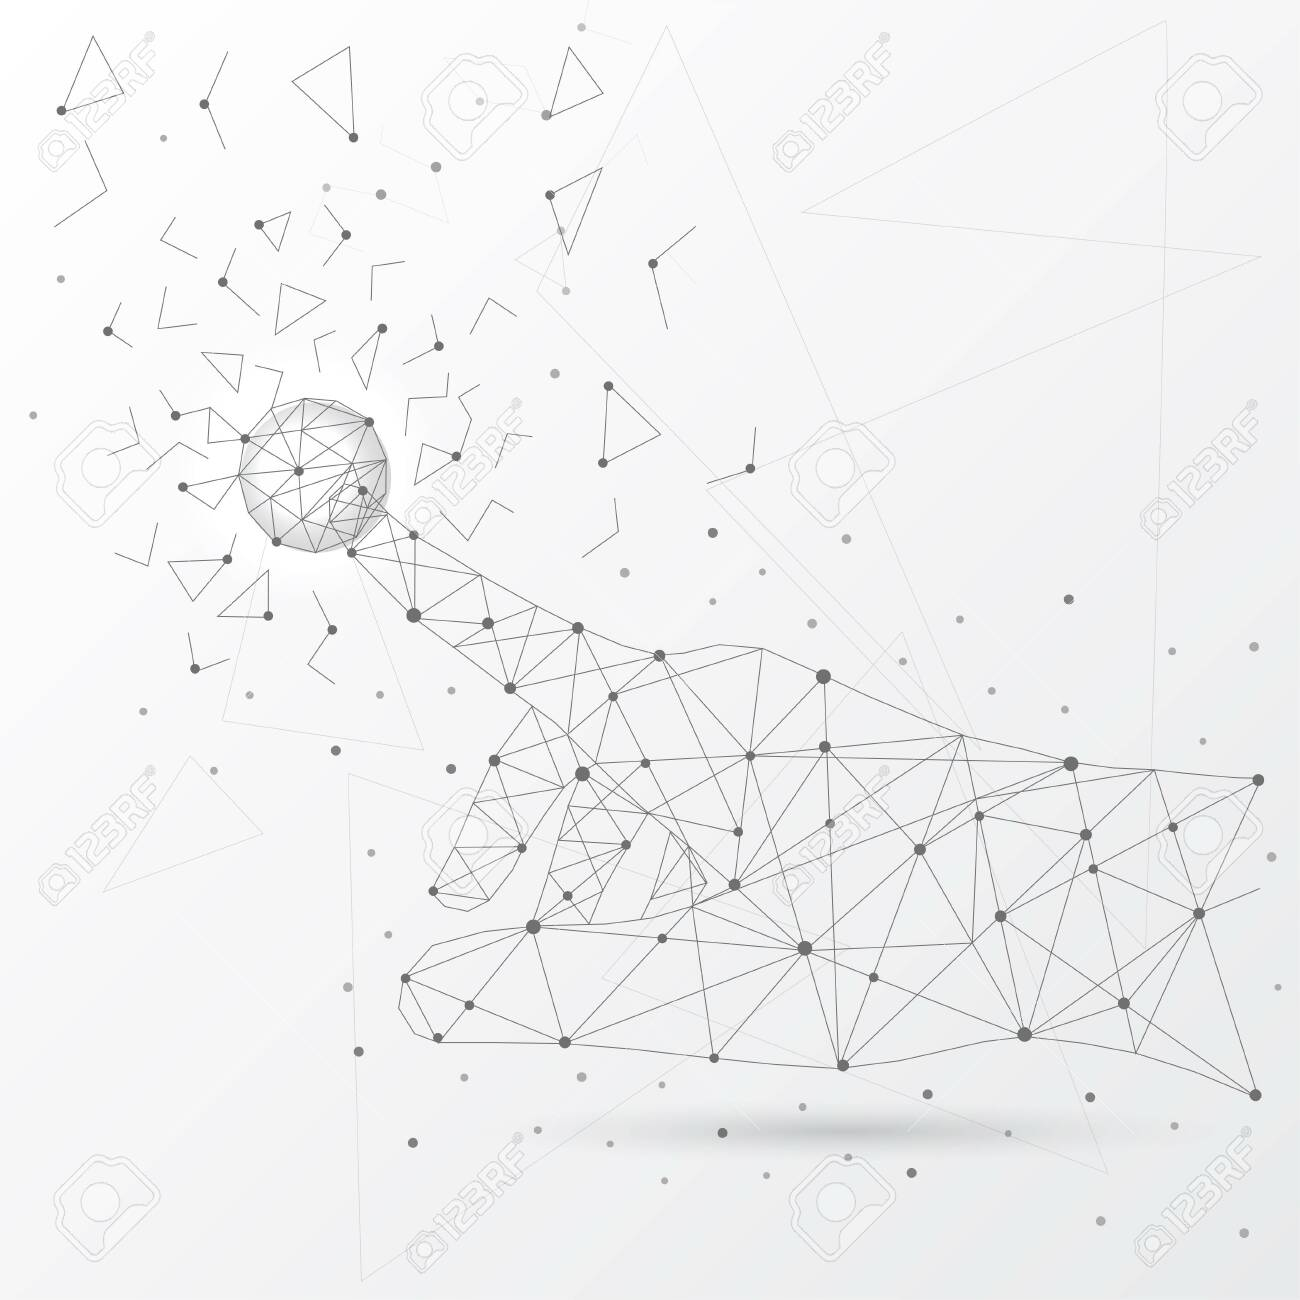 Hand touching global network connection and data from lines, triangles and particle low poly style. - 144473475